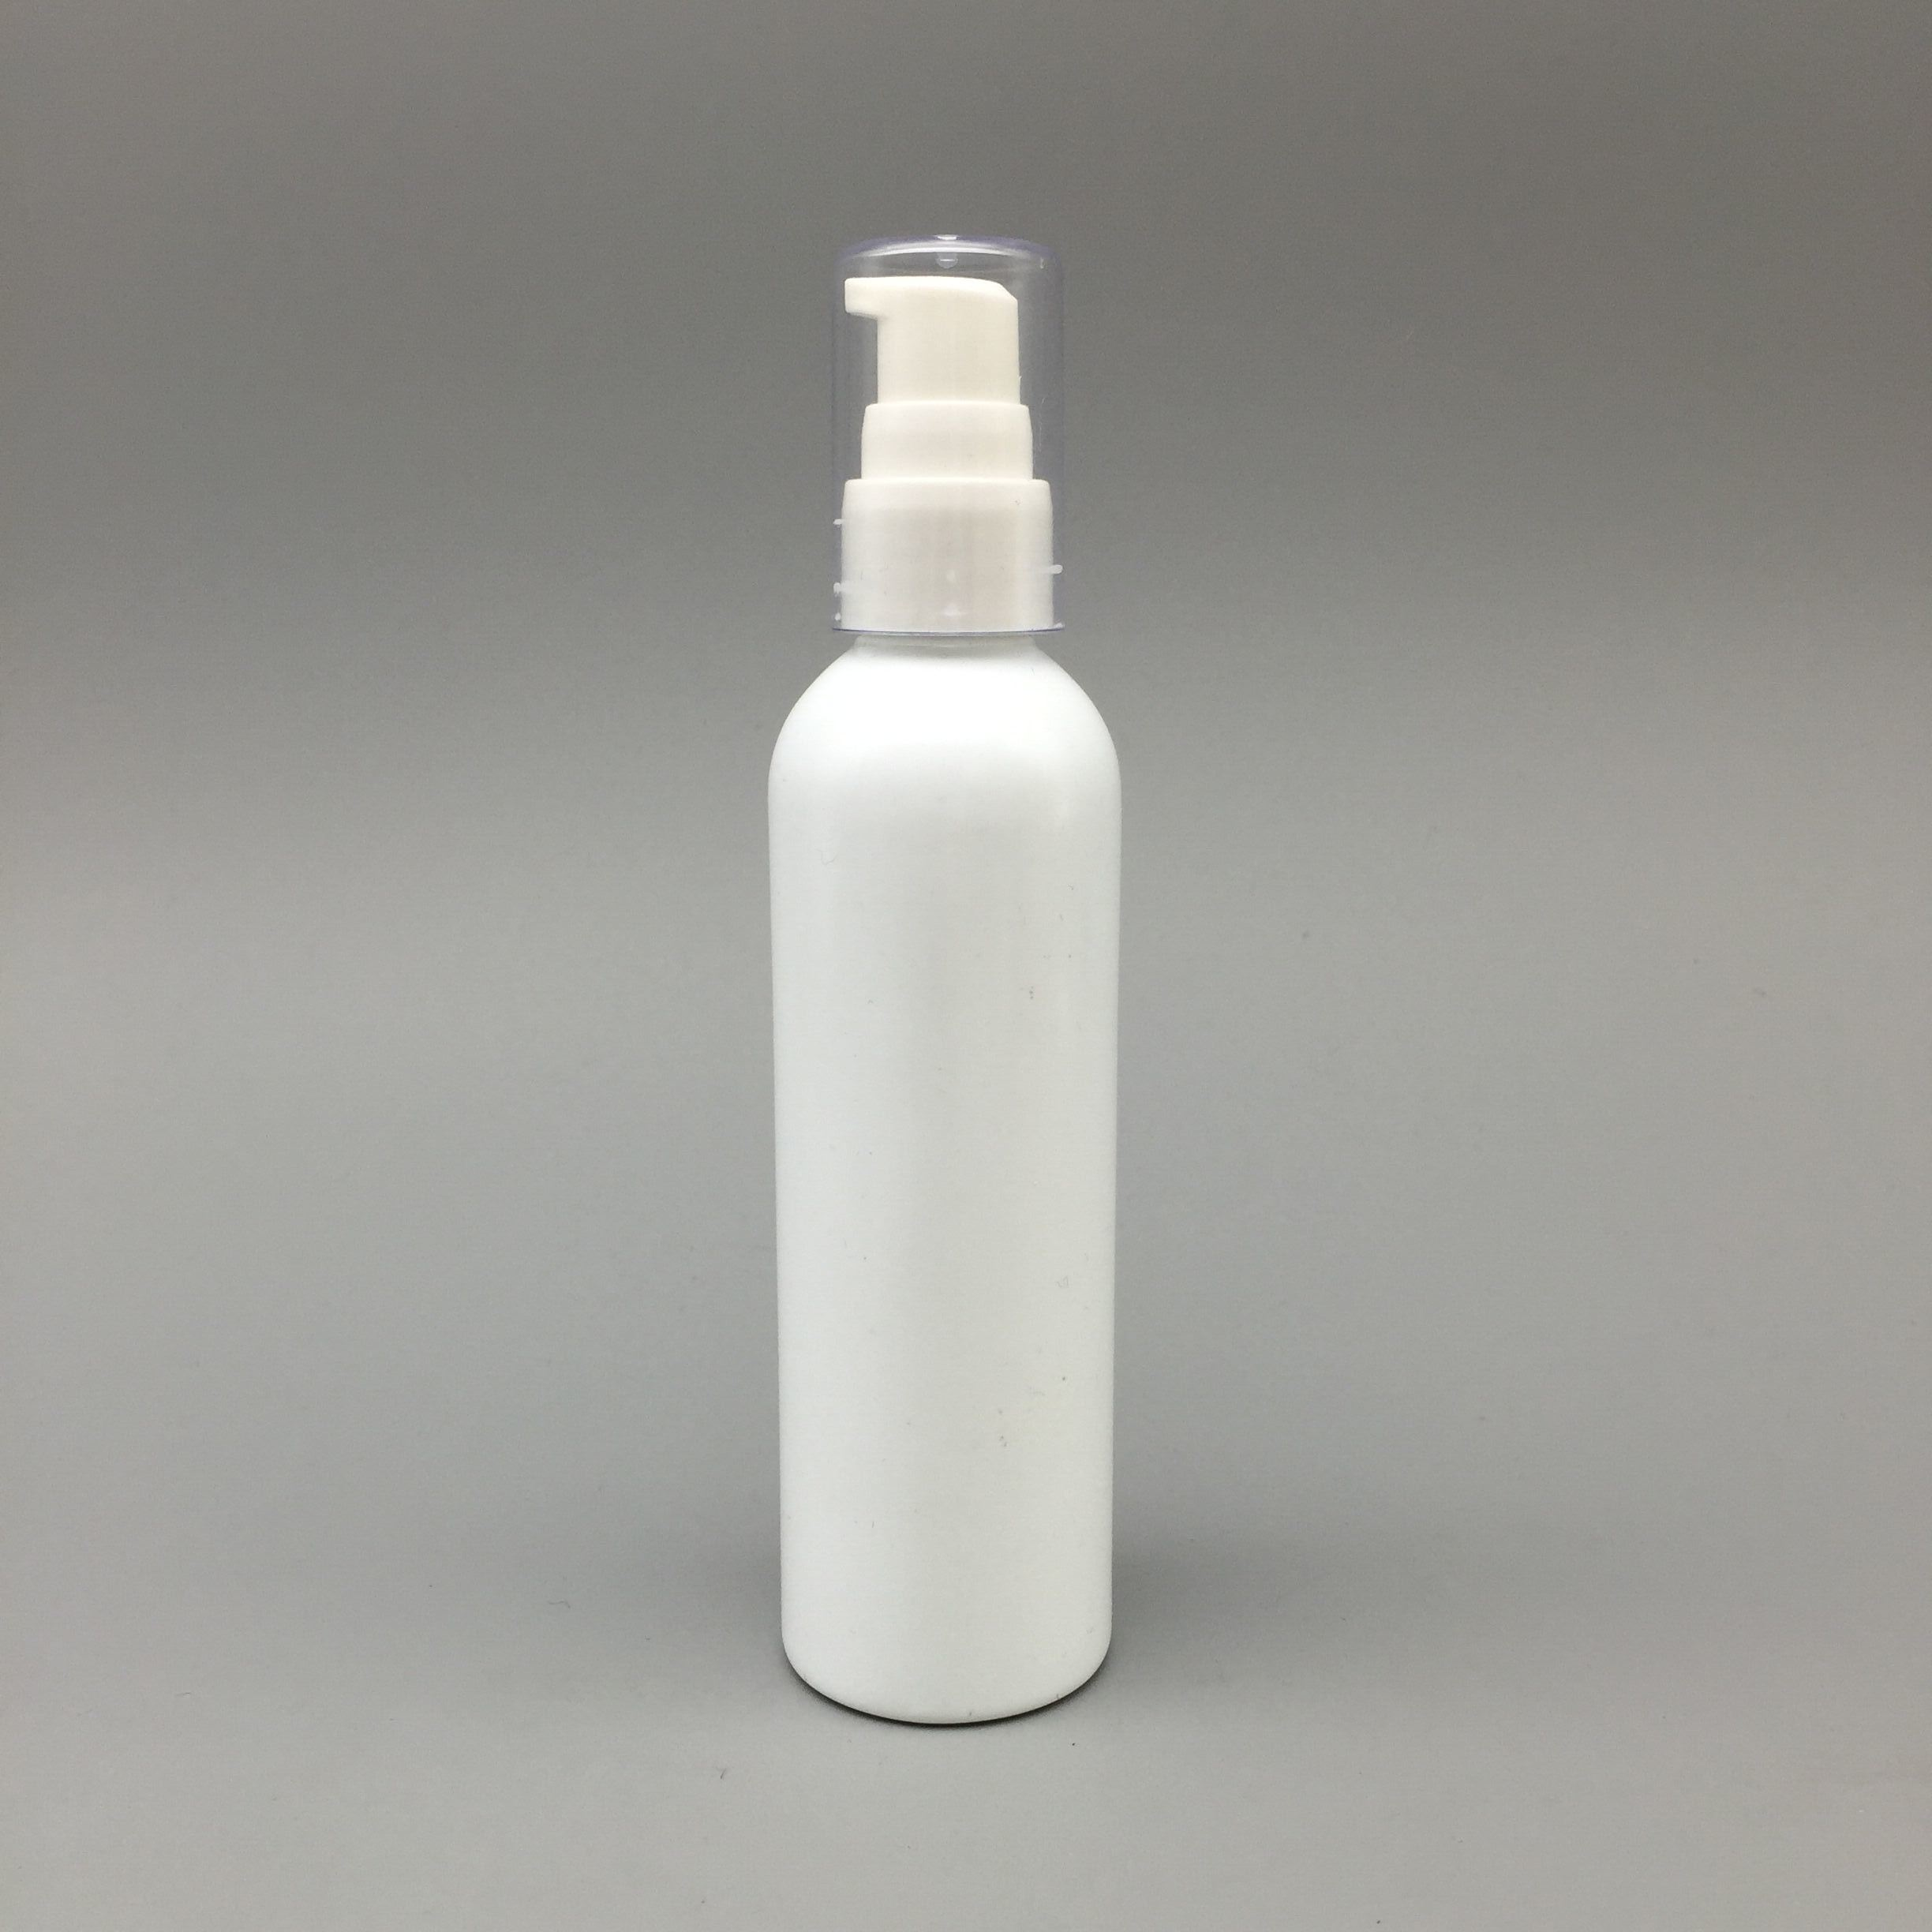 120ml White Color Pet Bottle with Sprayer Cosmetic Packaging